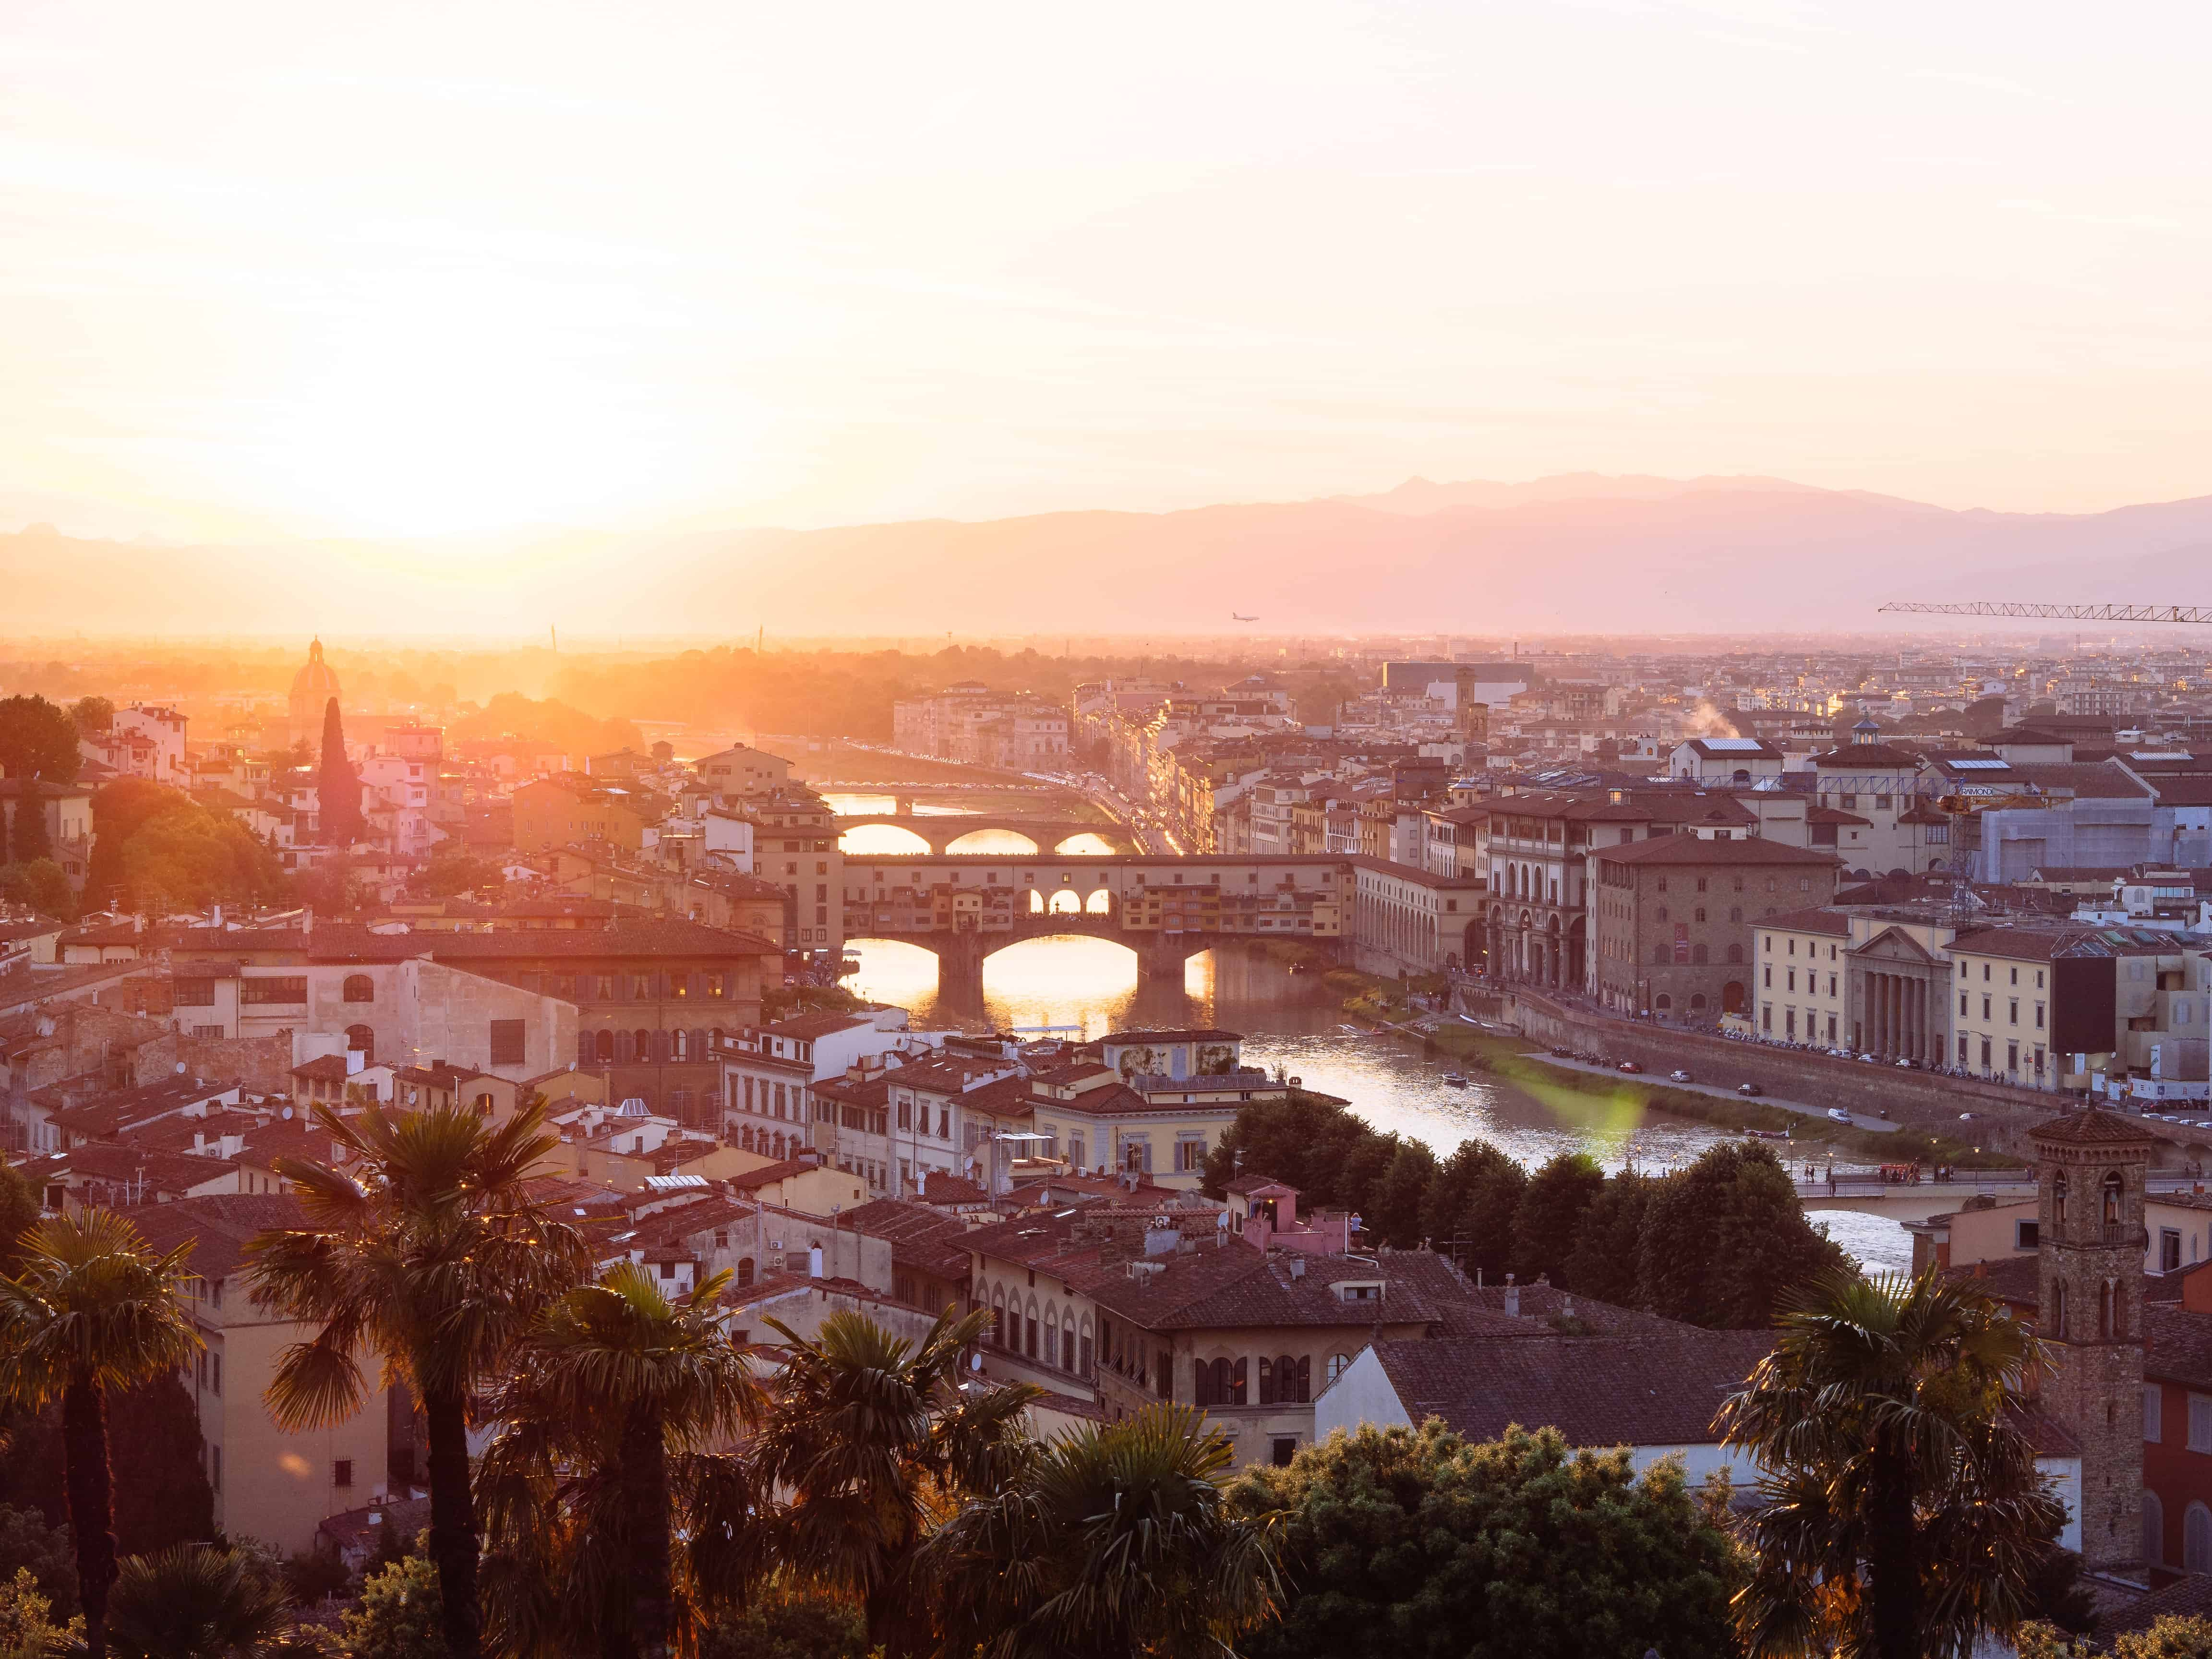 Sunsets in Florence definitely deserves an Instagram photo